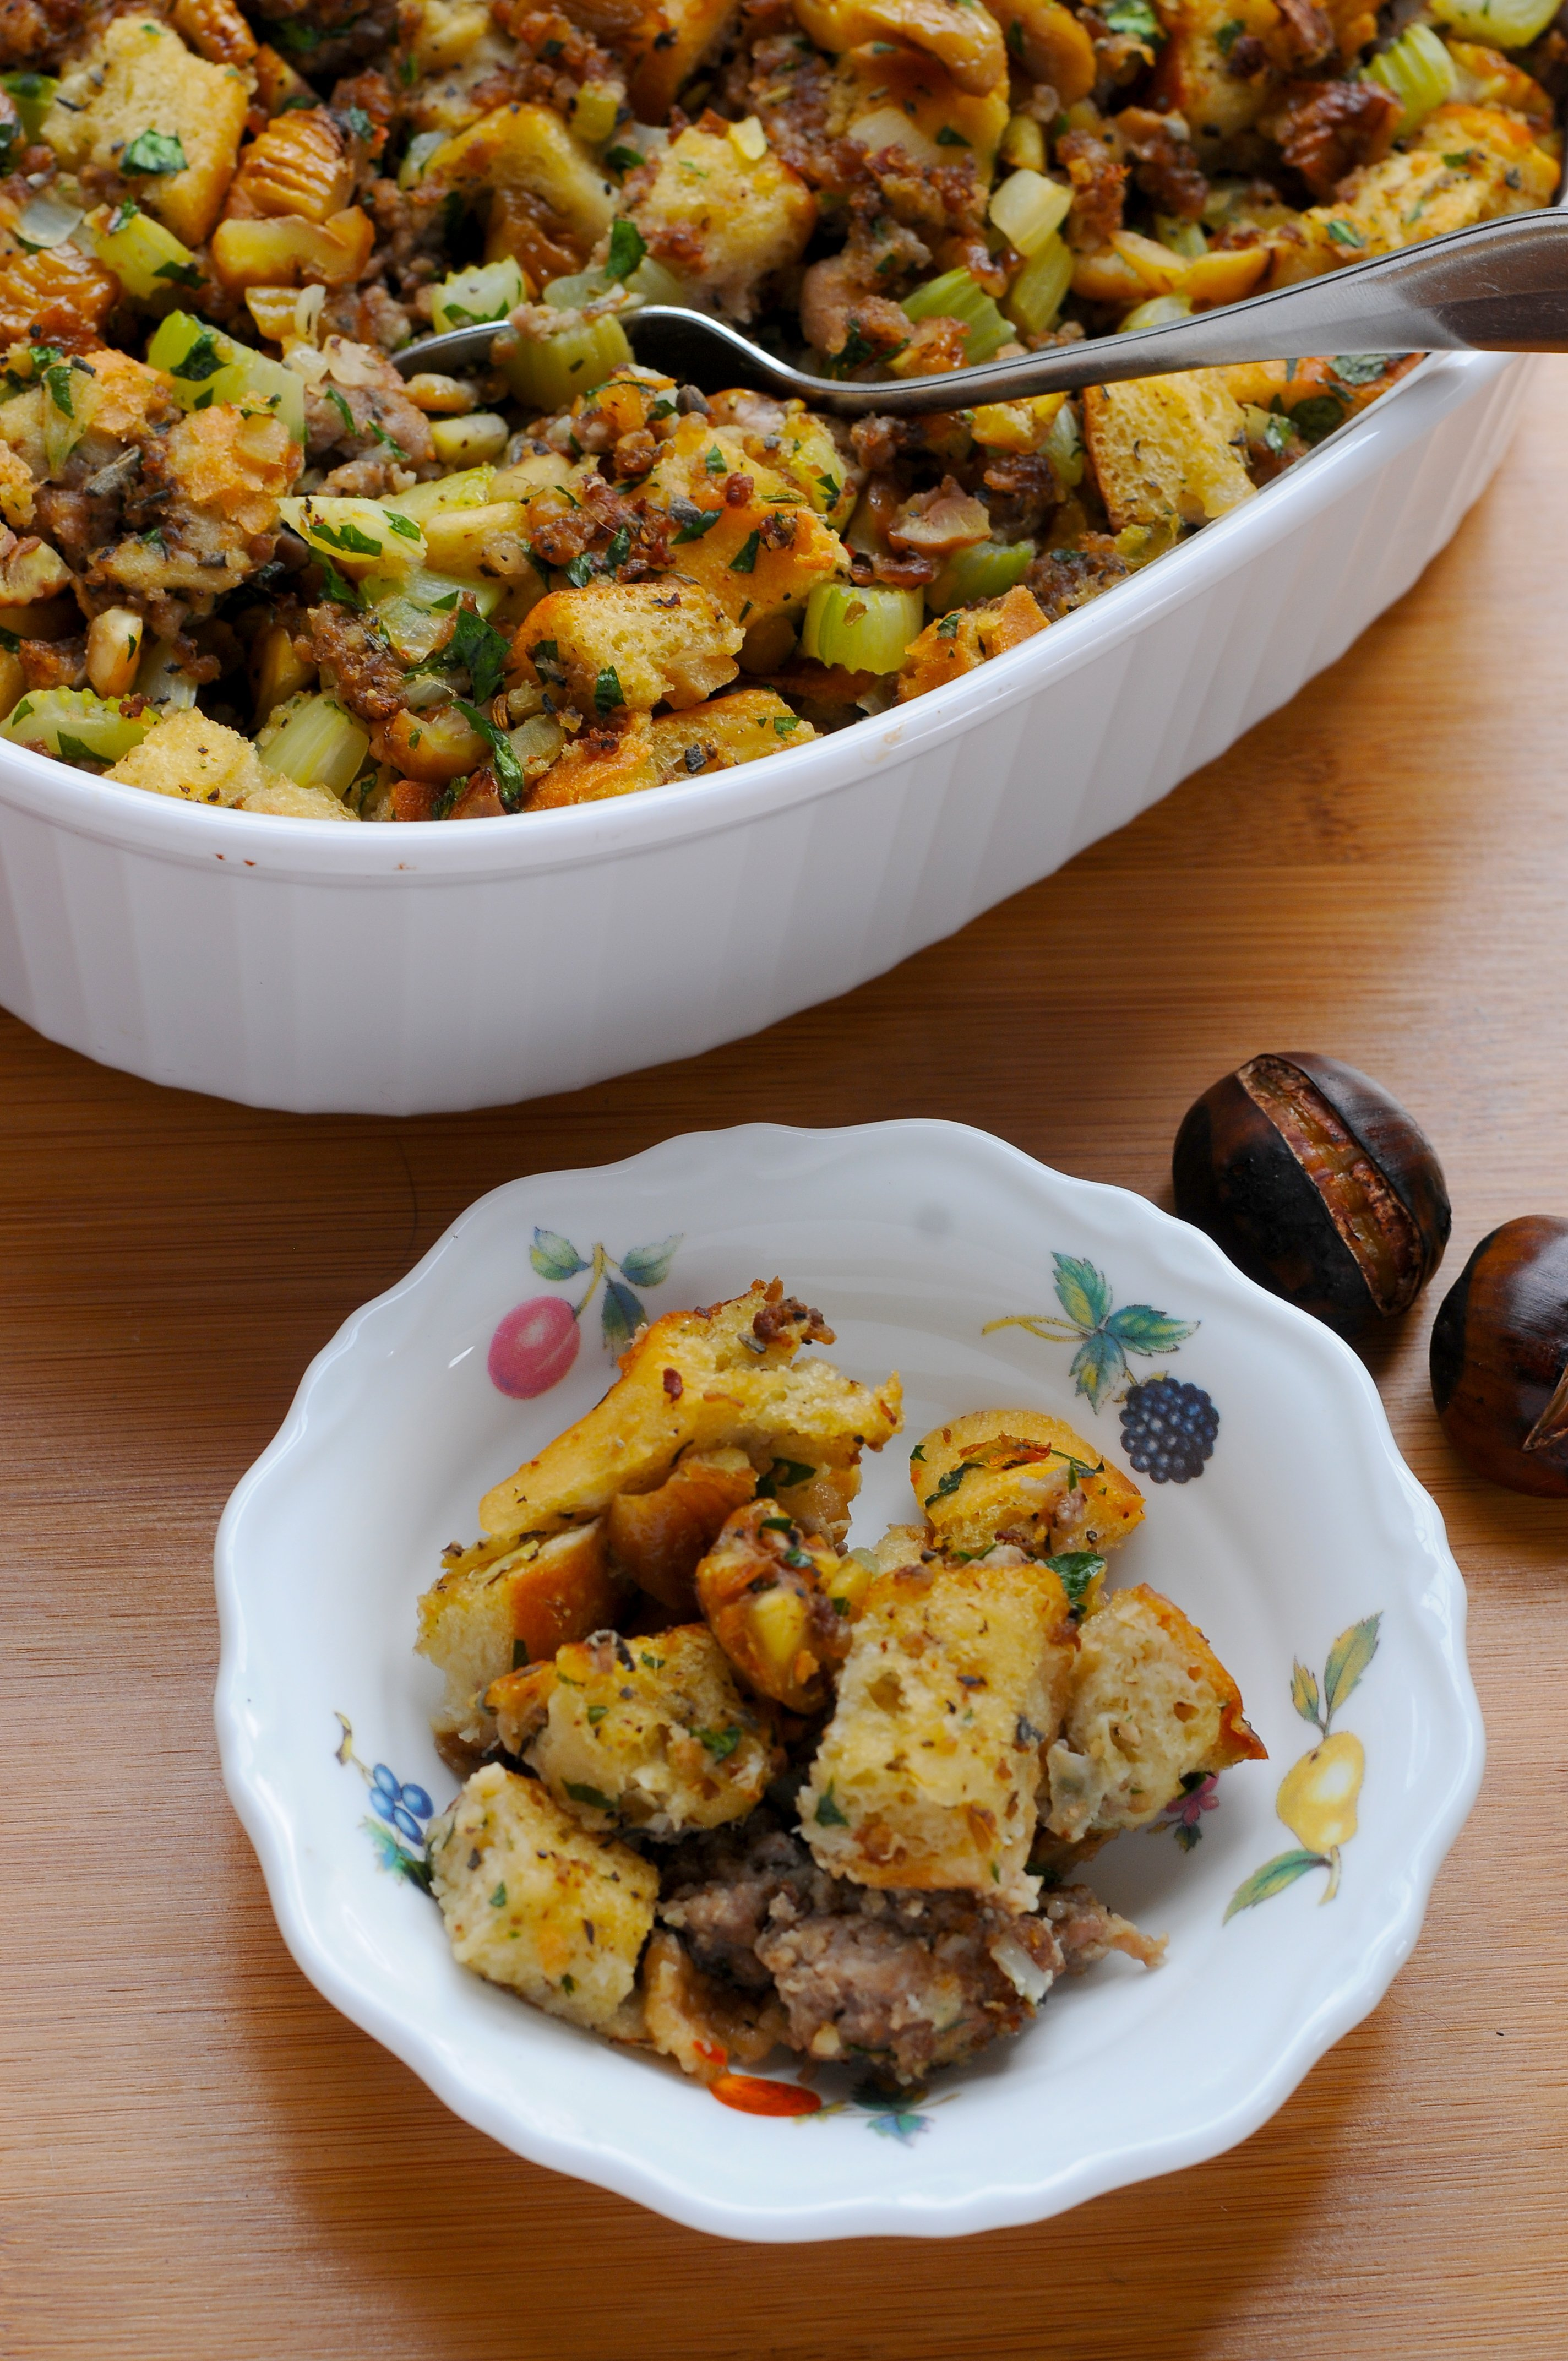 Over the Top, Roasted Chestnut & Sausage Stuffing